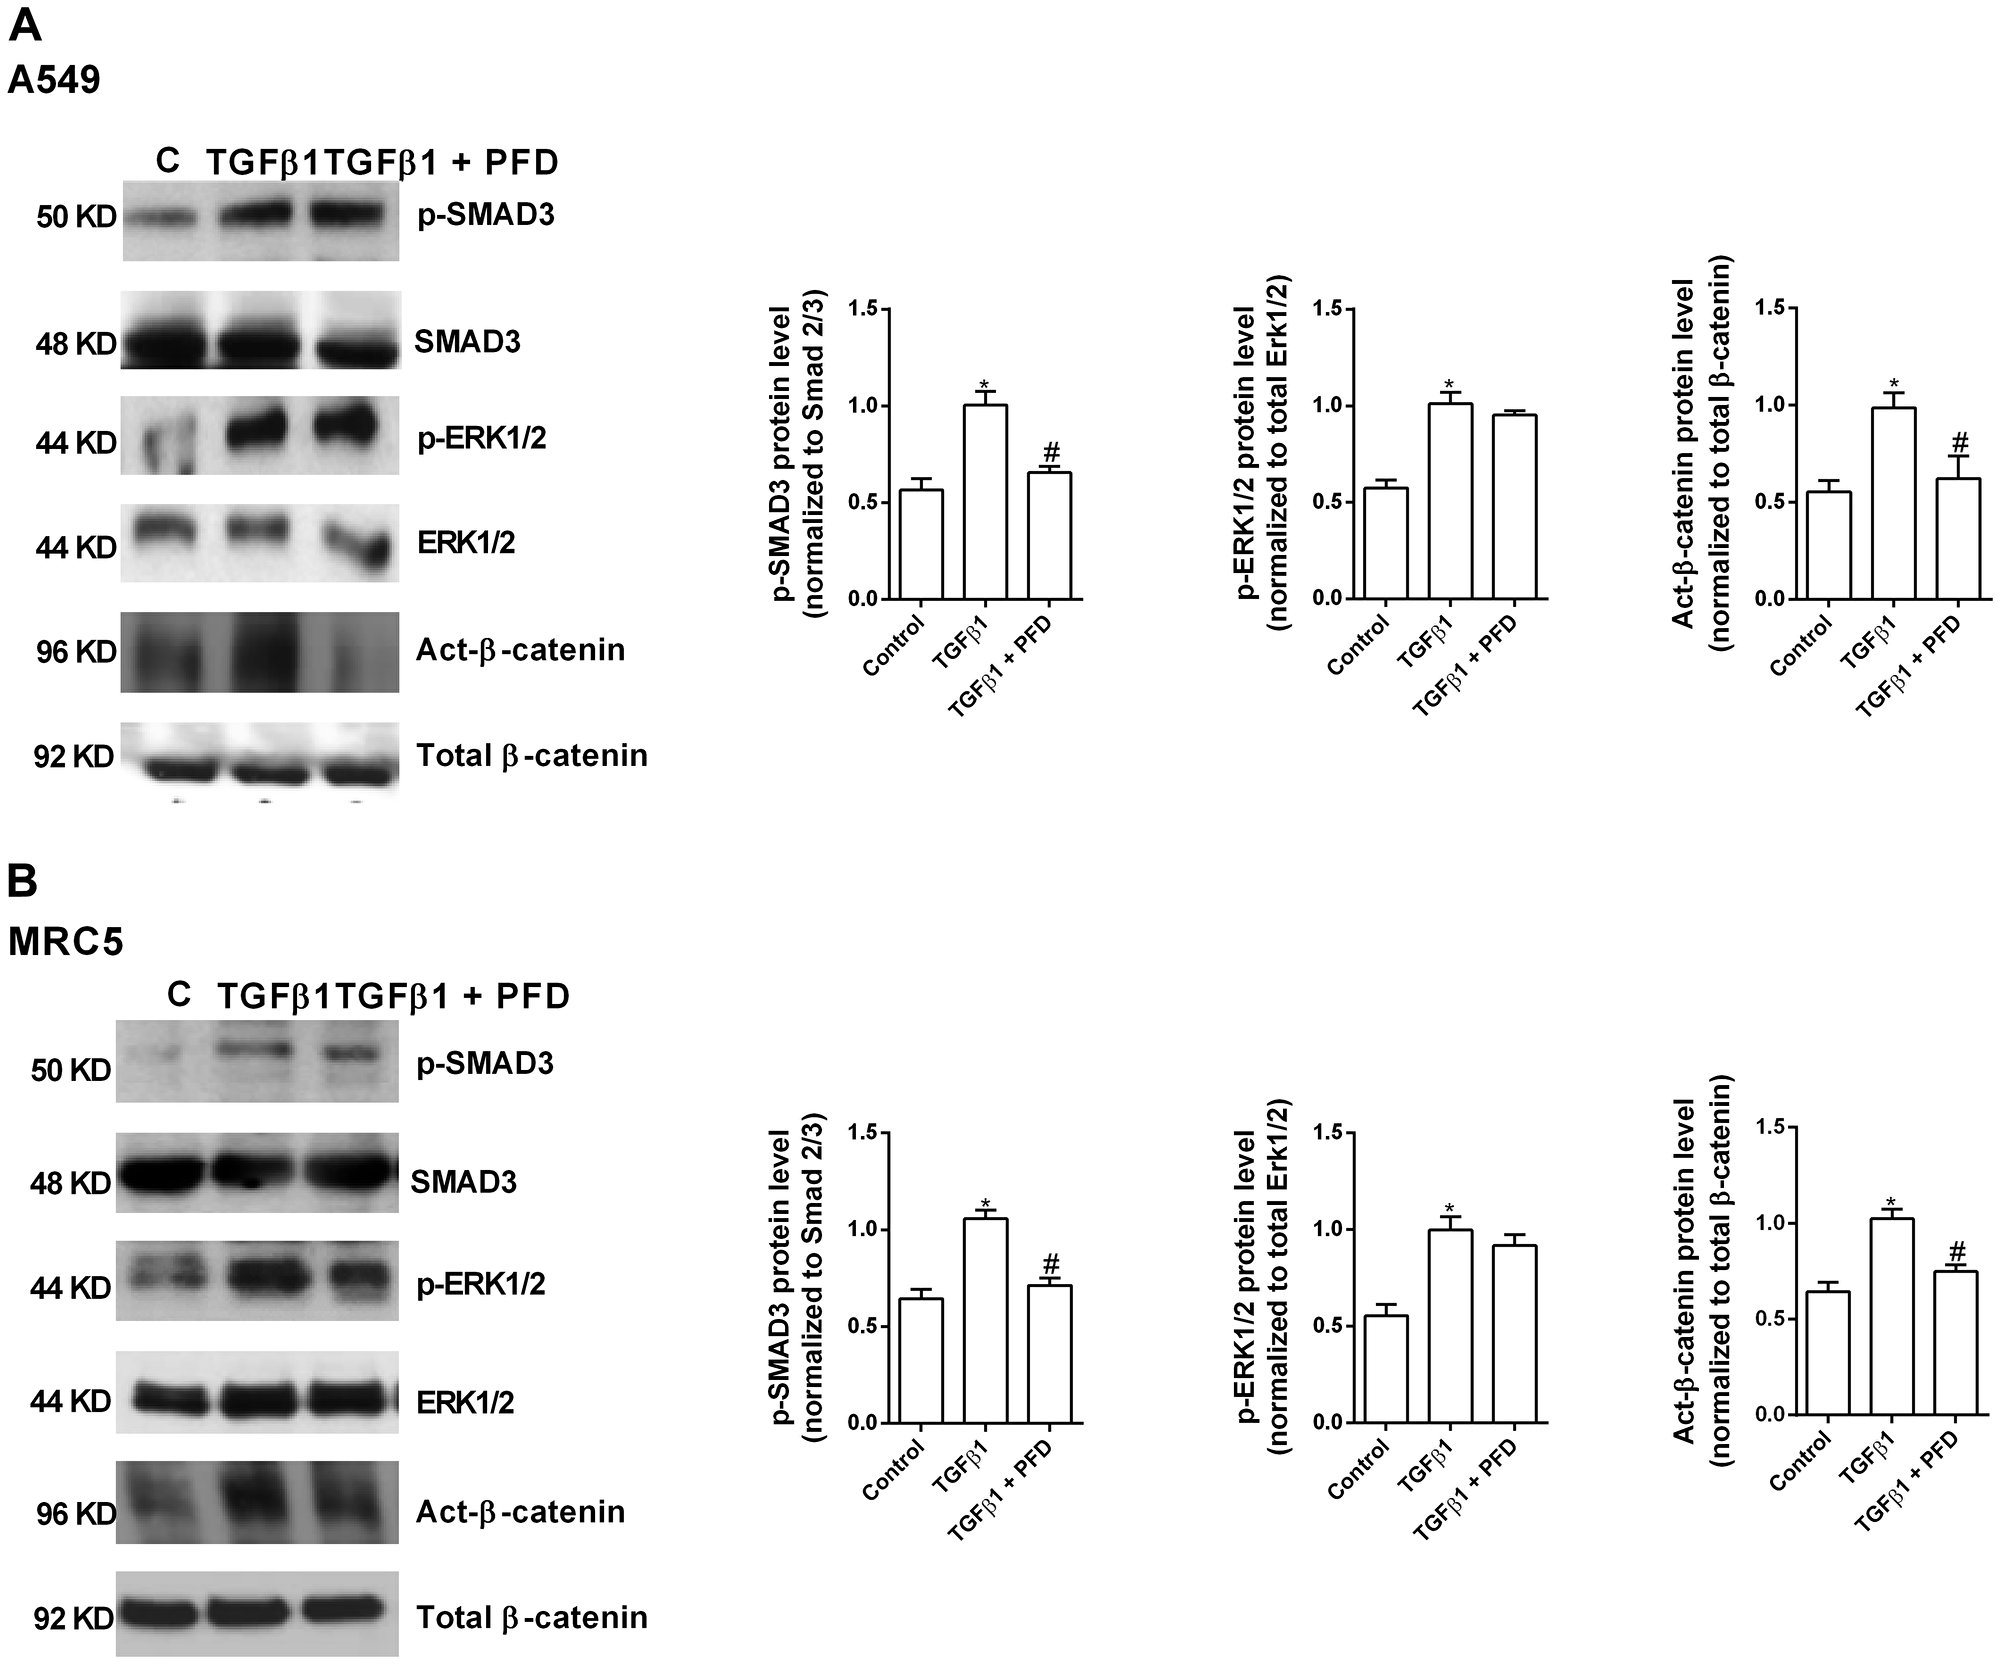 Pirfenidone (PFD) inhibits the TGF-β1-induced β-catenin activation but not the SMAD3 and ERK1/2 phosphorylation.